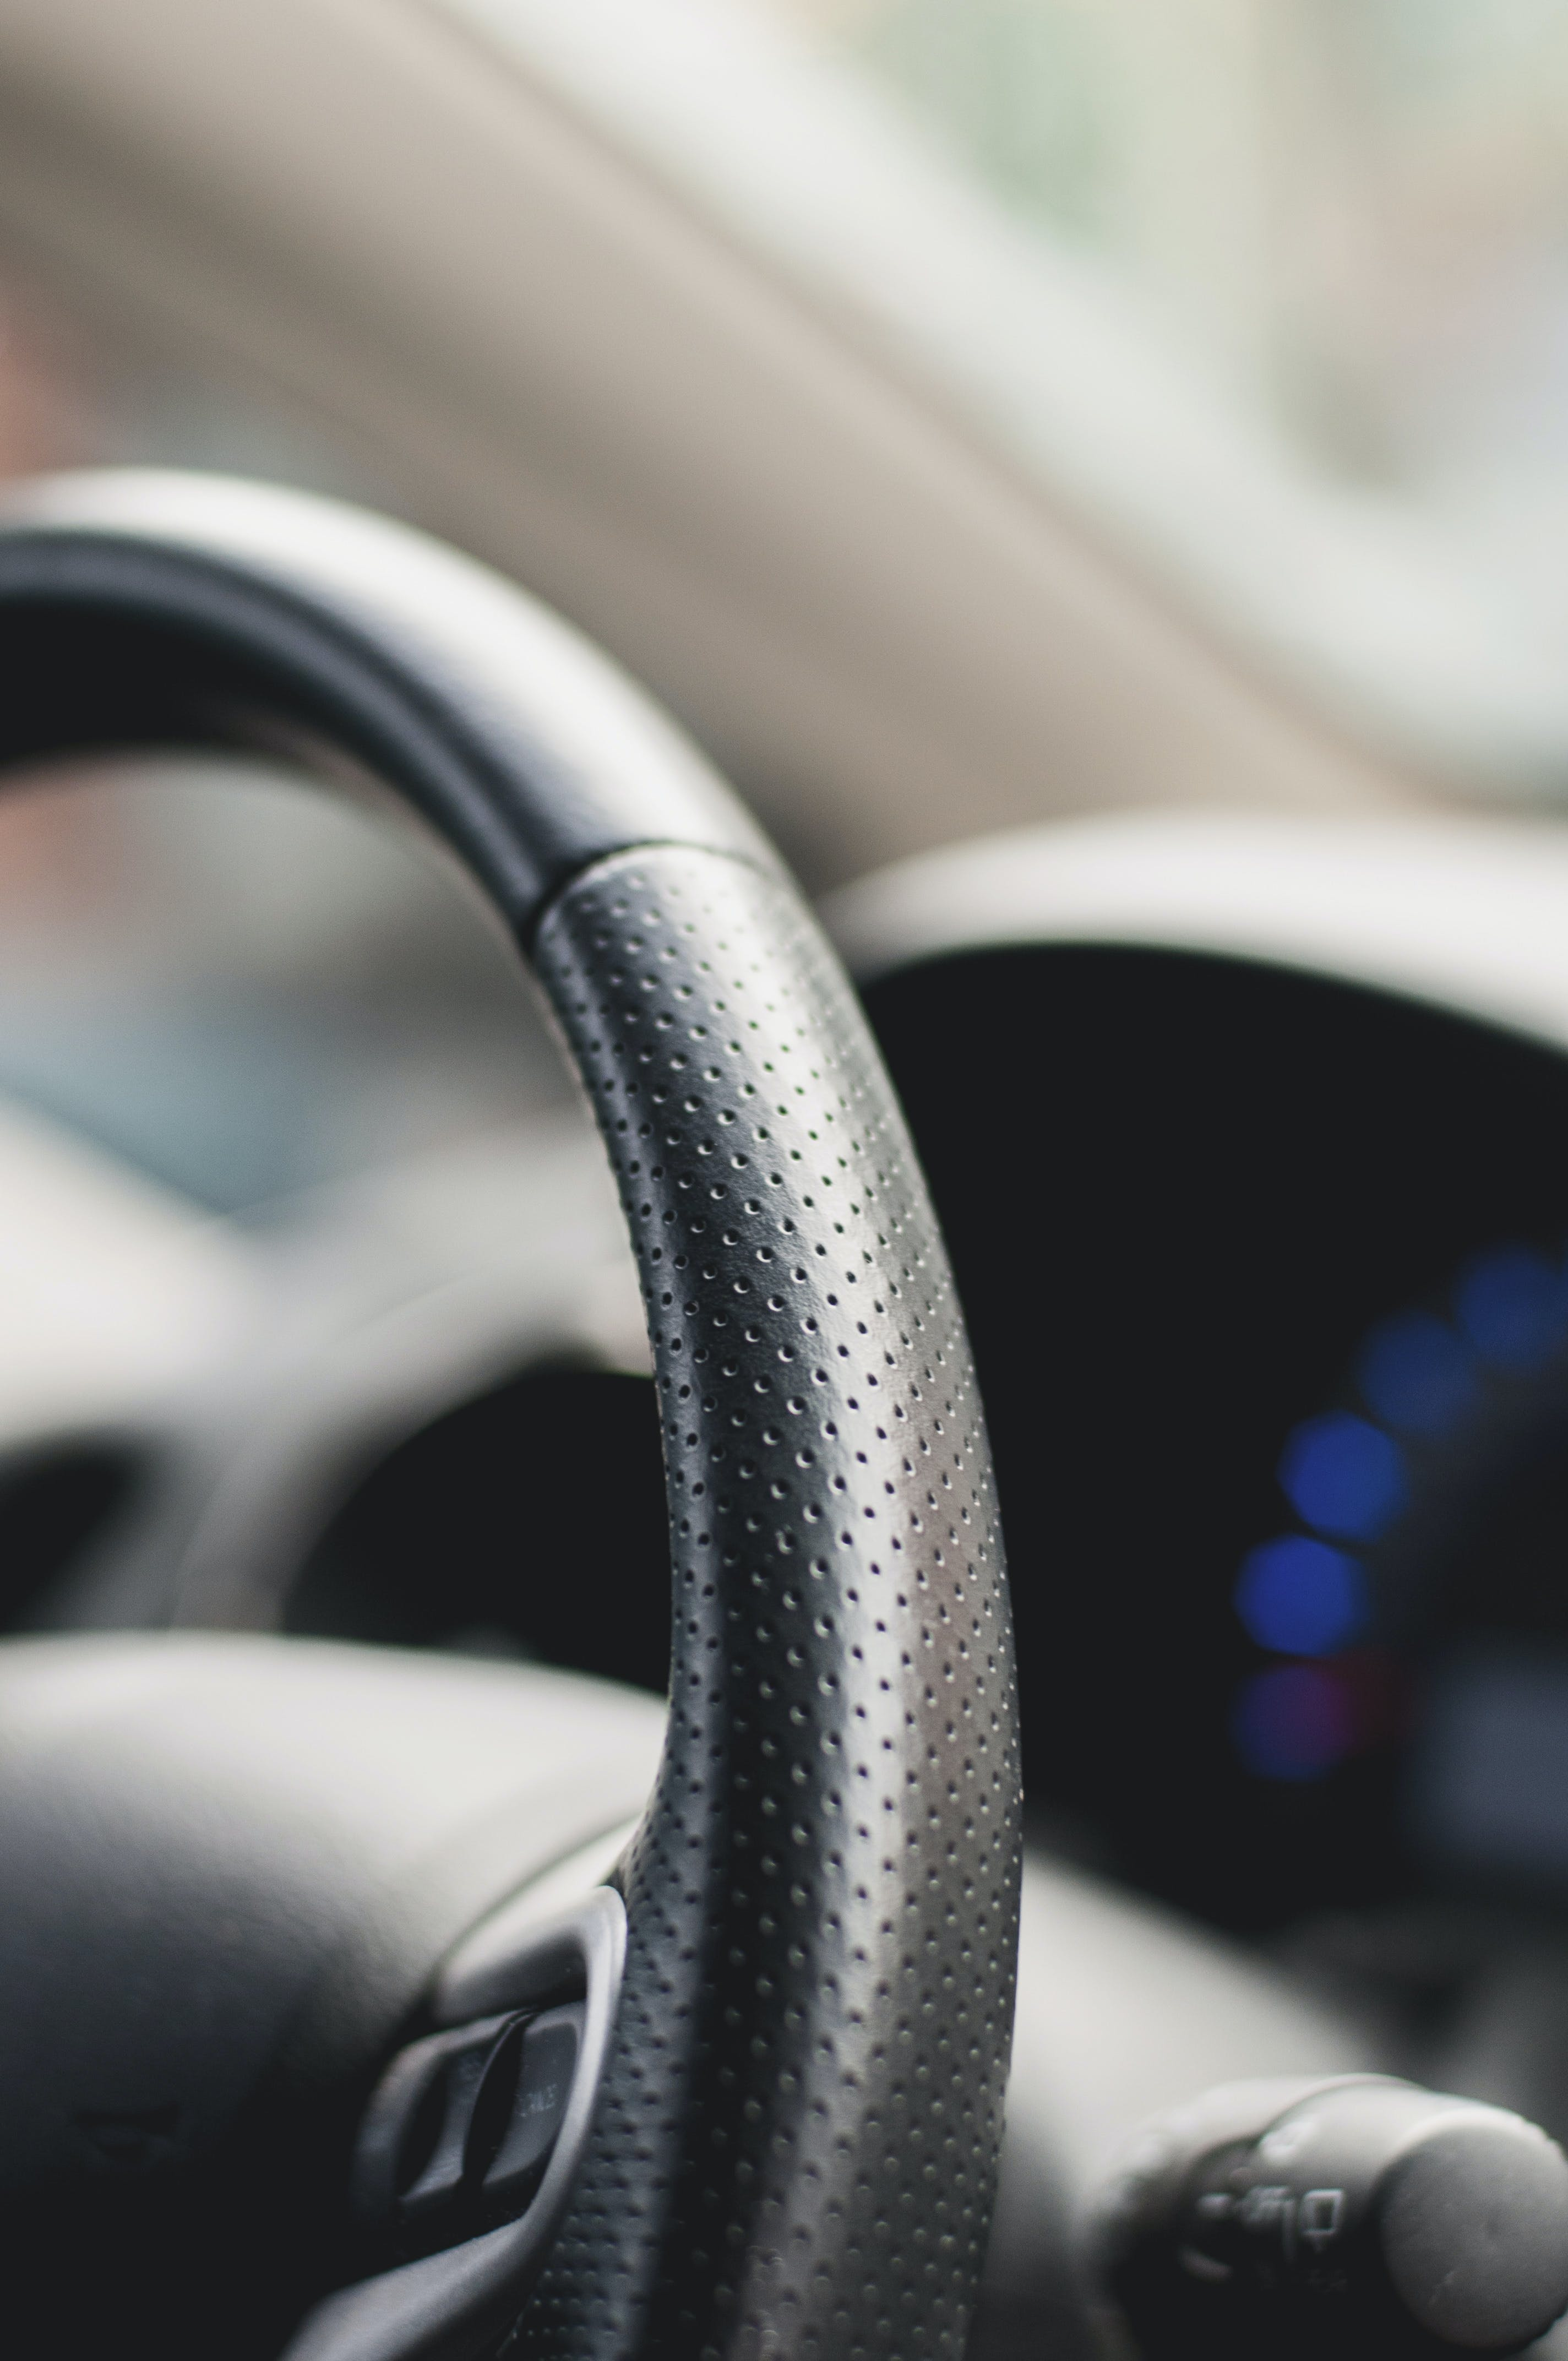 Black Car Steering Wheel Shallow Focus Photography